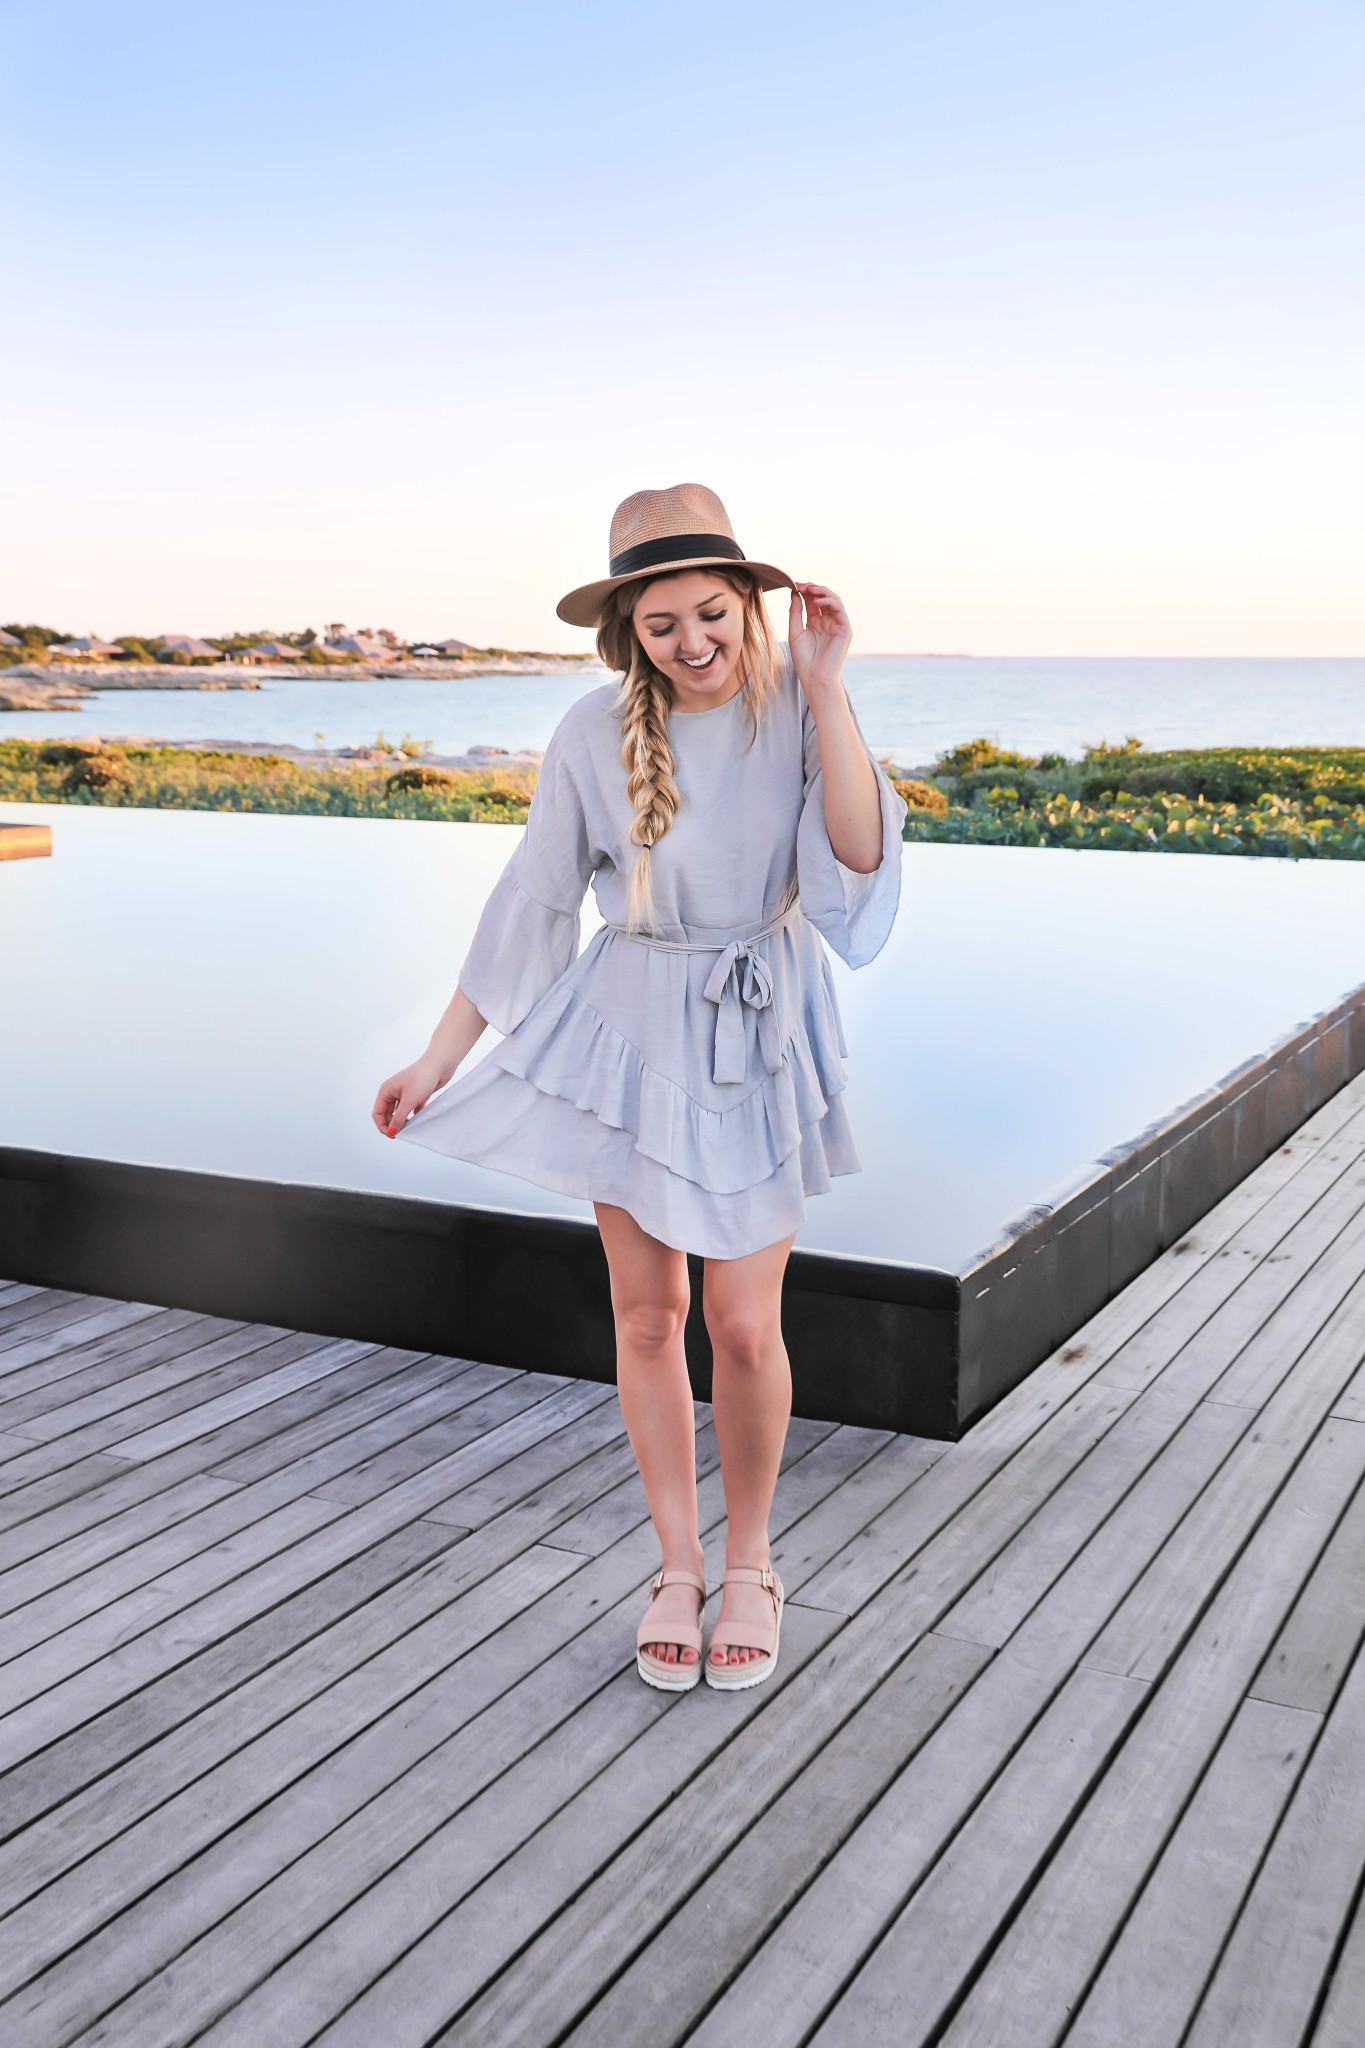 Turks and Caicos spring break outfit roundup what to wear vacation beach ootd swimsuits fashion blog daily dose of charm Lauren Lindmark